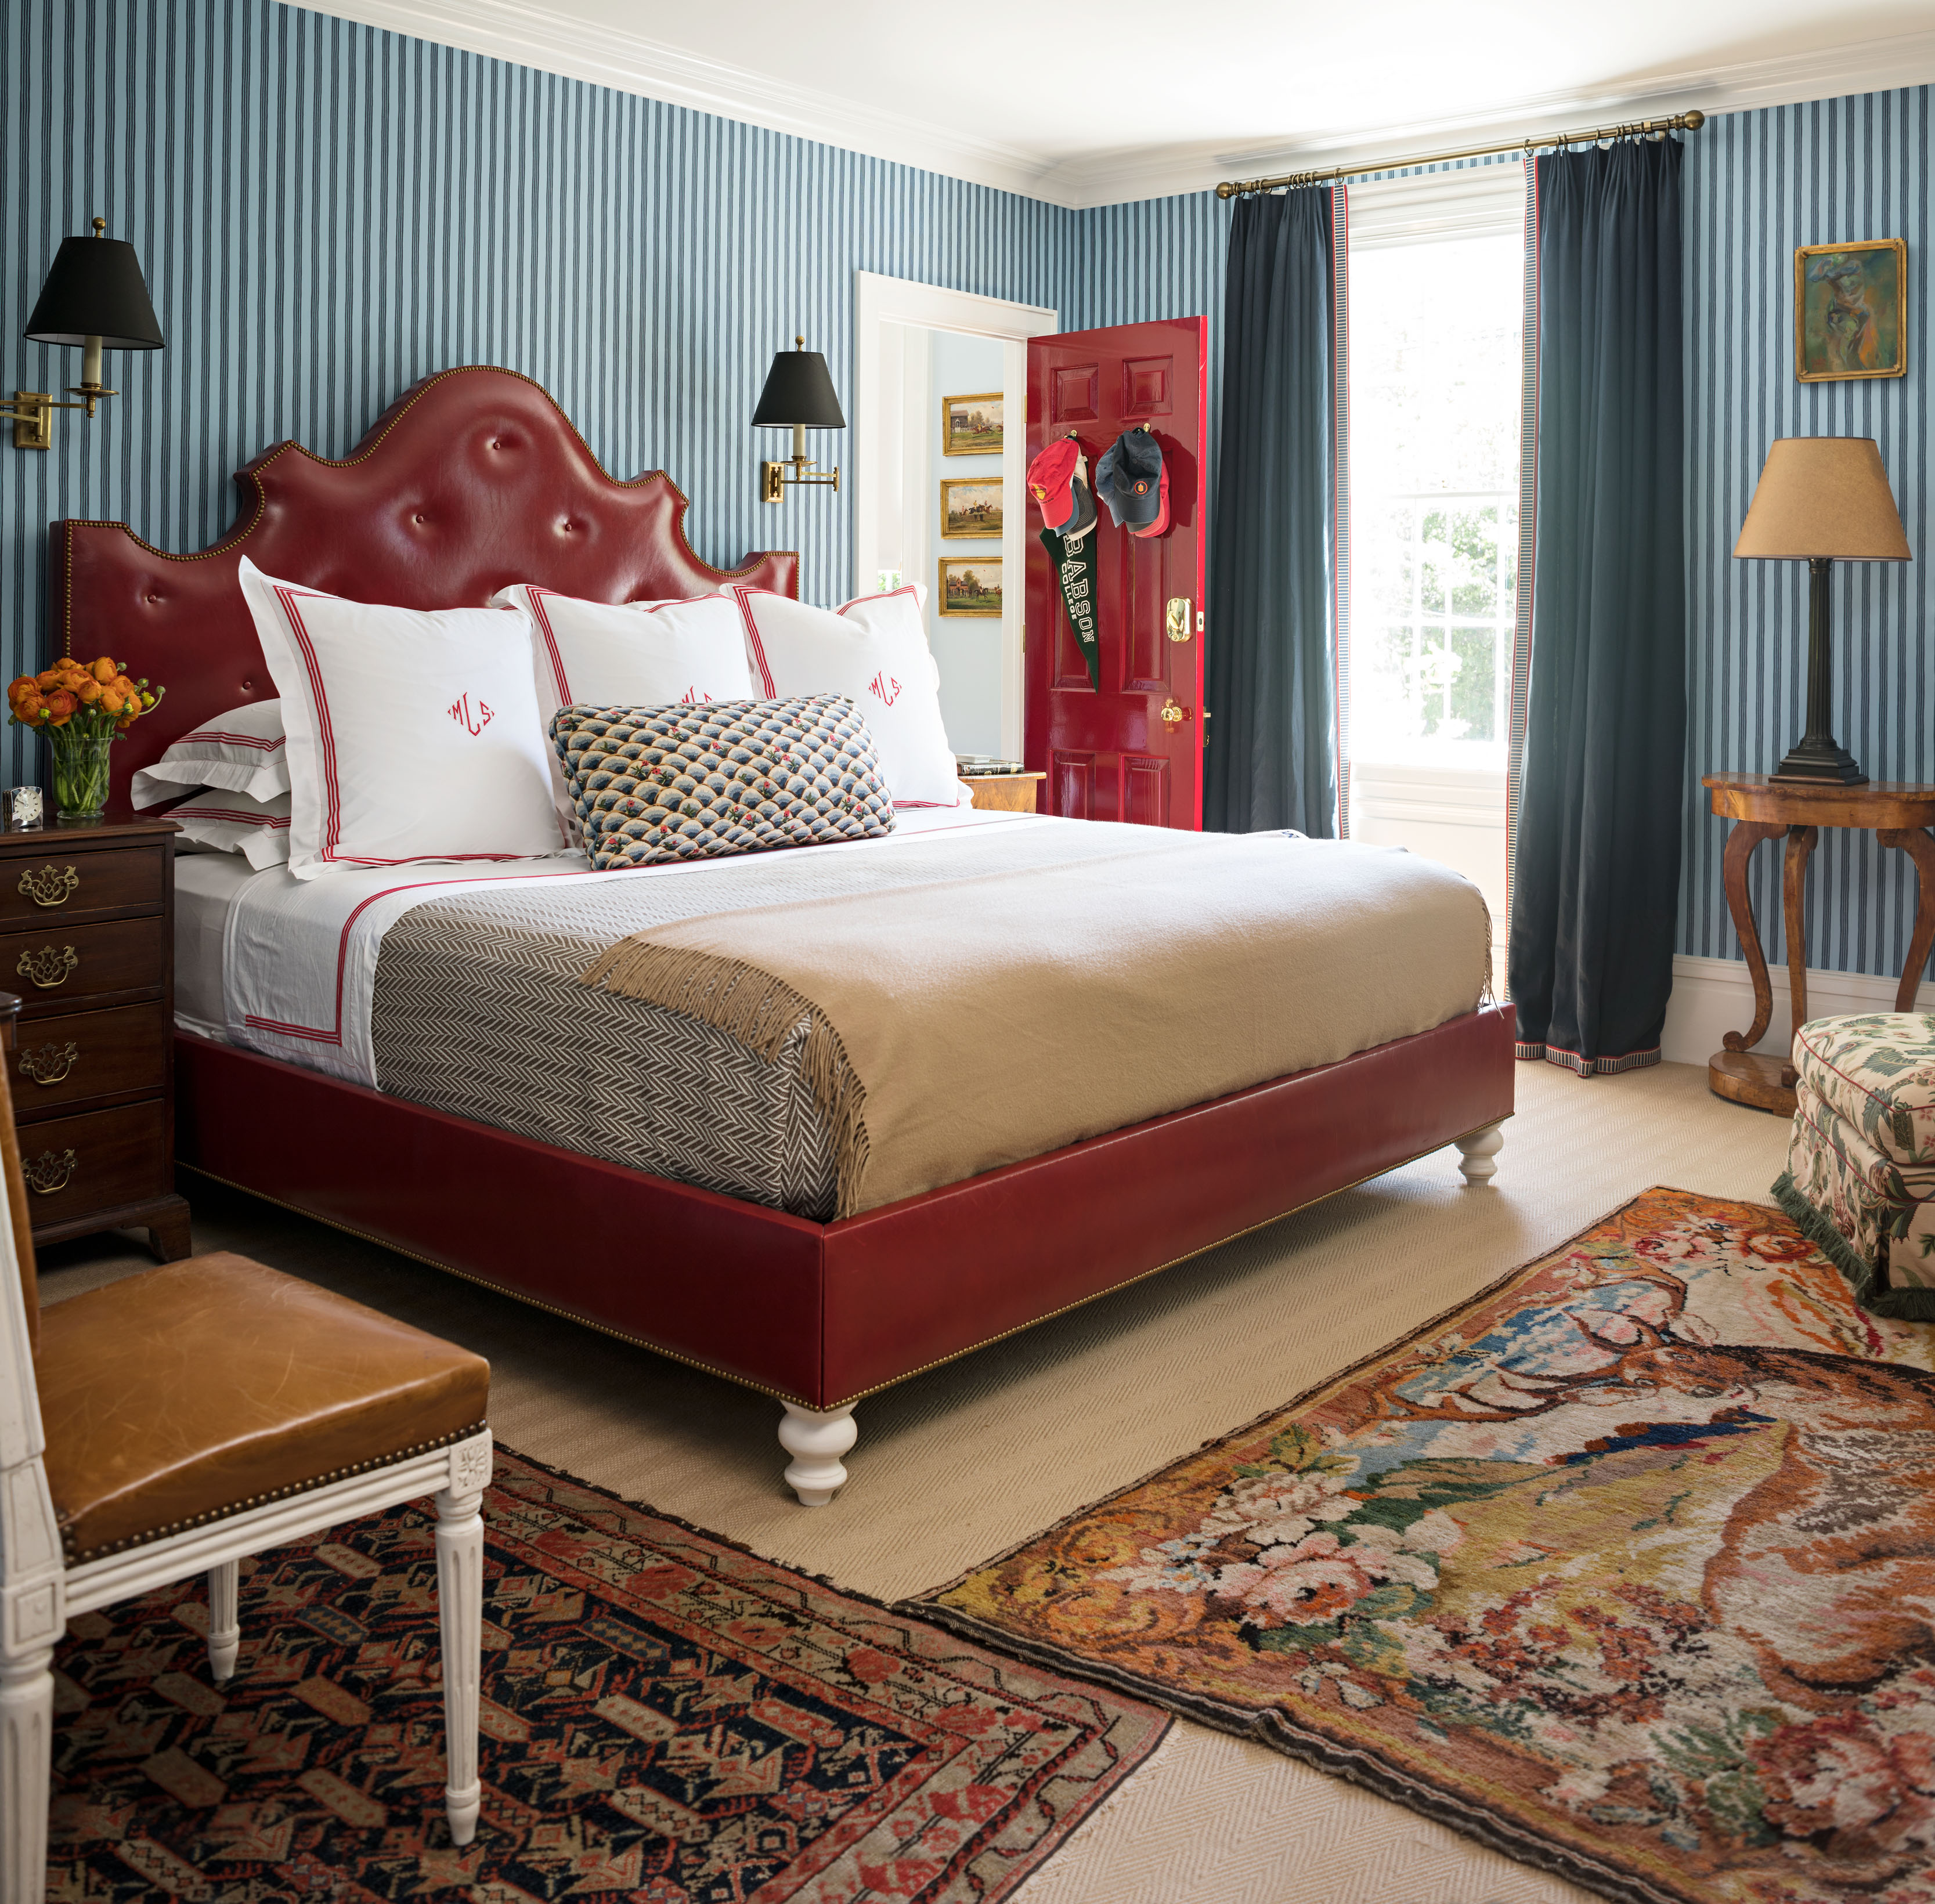 Nick Olsen Sag Harbor Home Master Bedroom Blue Striped Walls Red Tufted Leather Headboard Michael Lorber Katie Considers